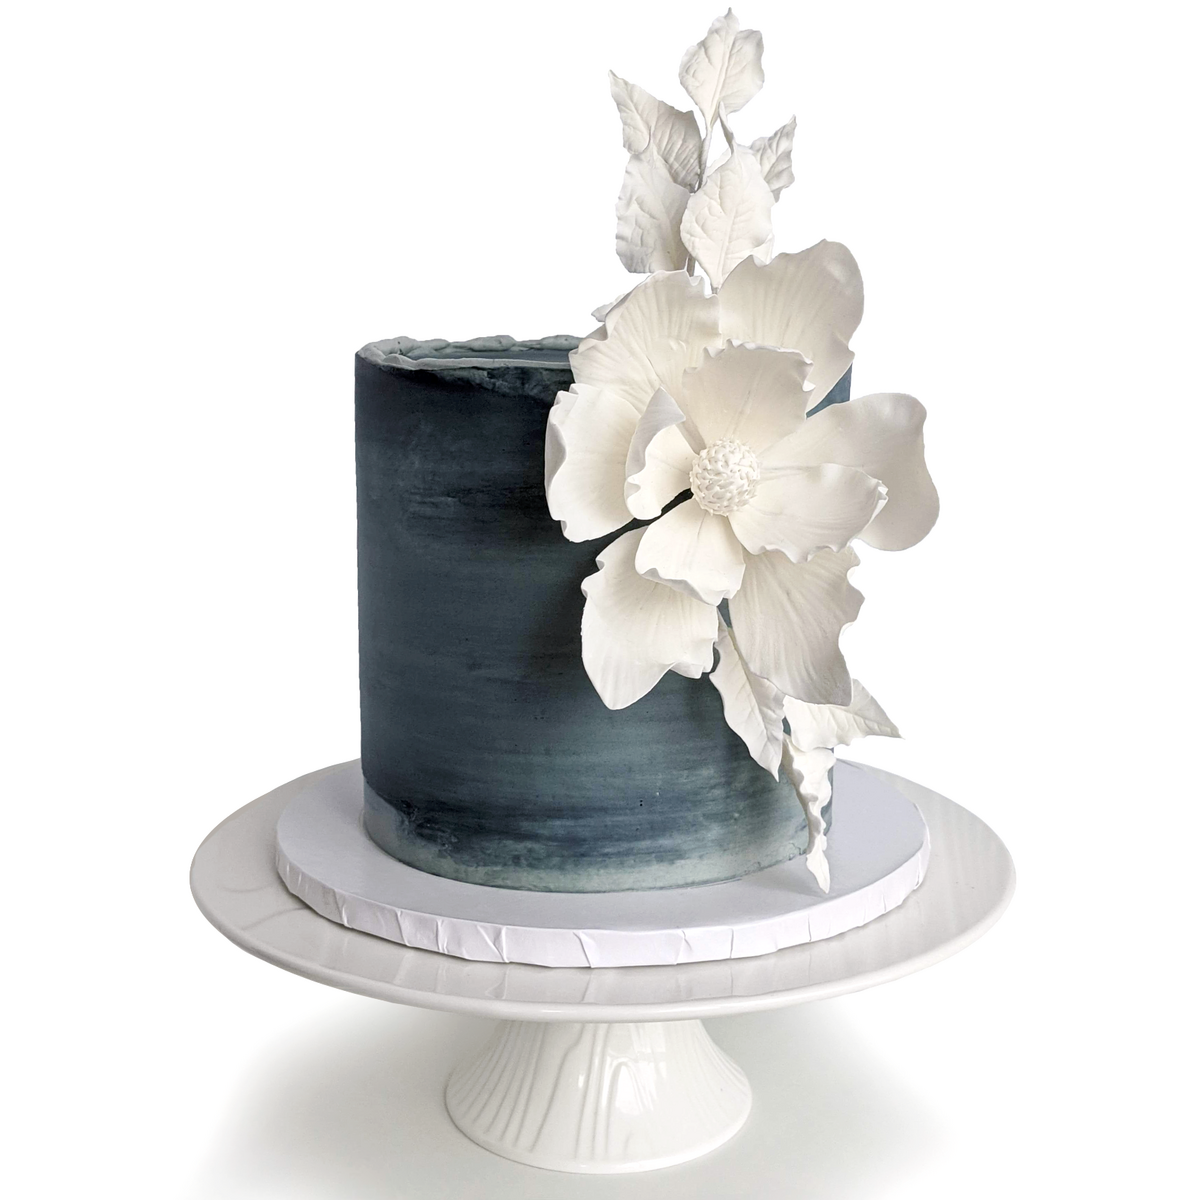 Whippt Kitchen - Wedding Cake Sugar flower 2